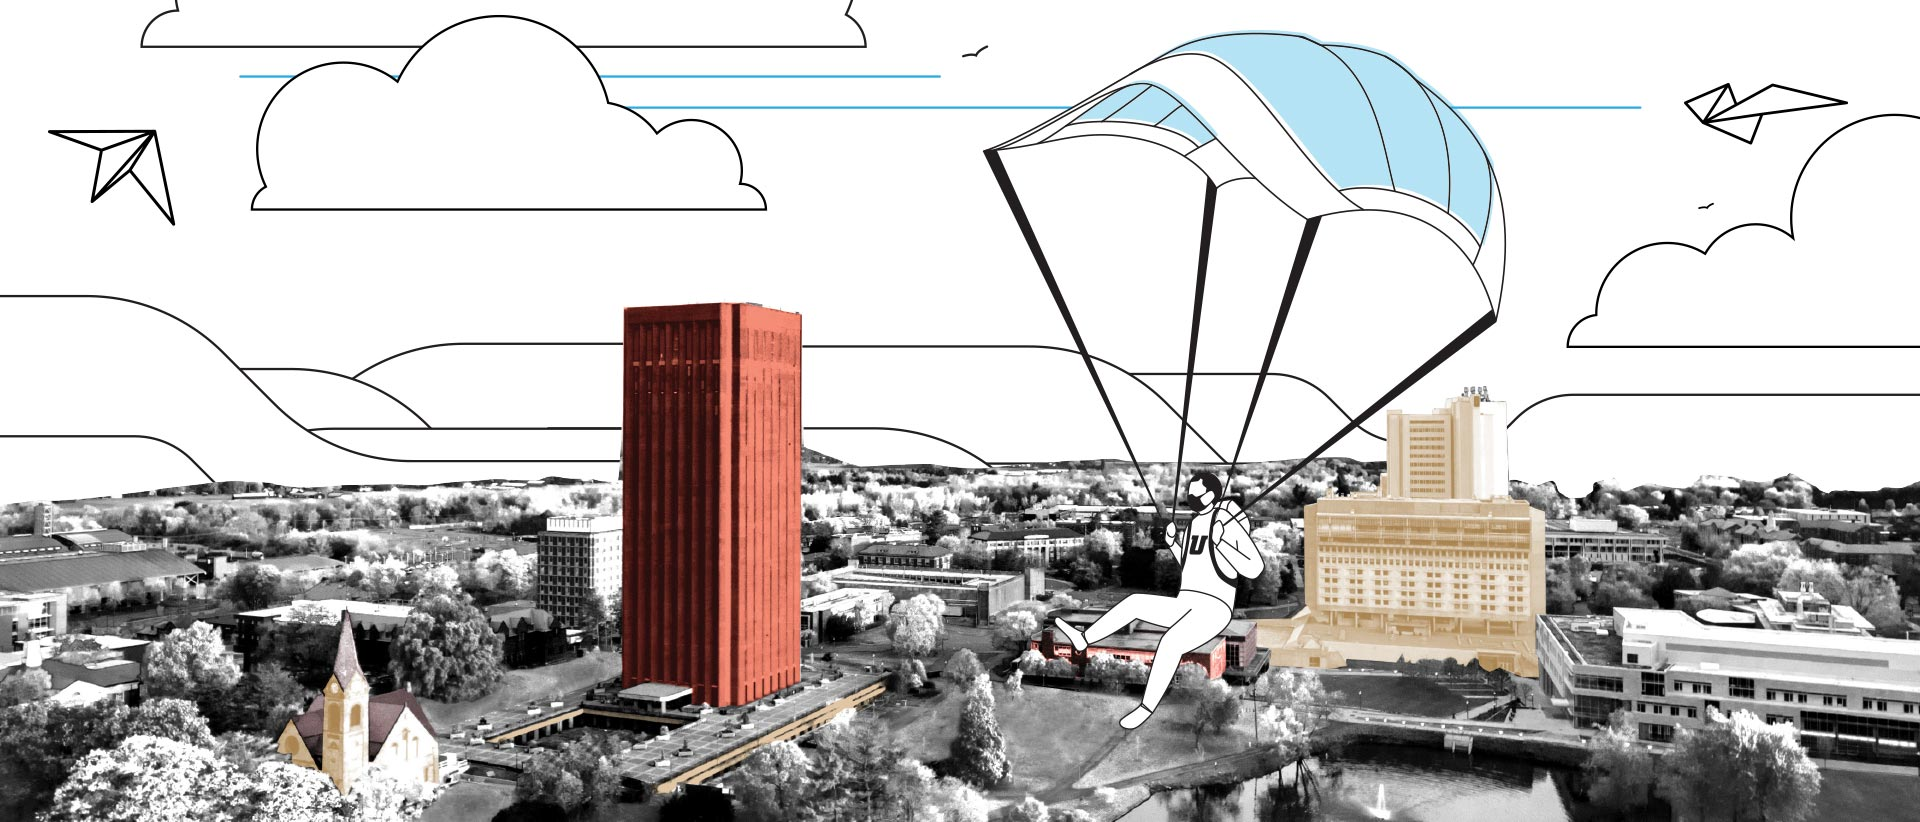 Photo illustration portrays a student parachuting onto the UMass campus using a medical mask as a parachute